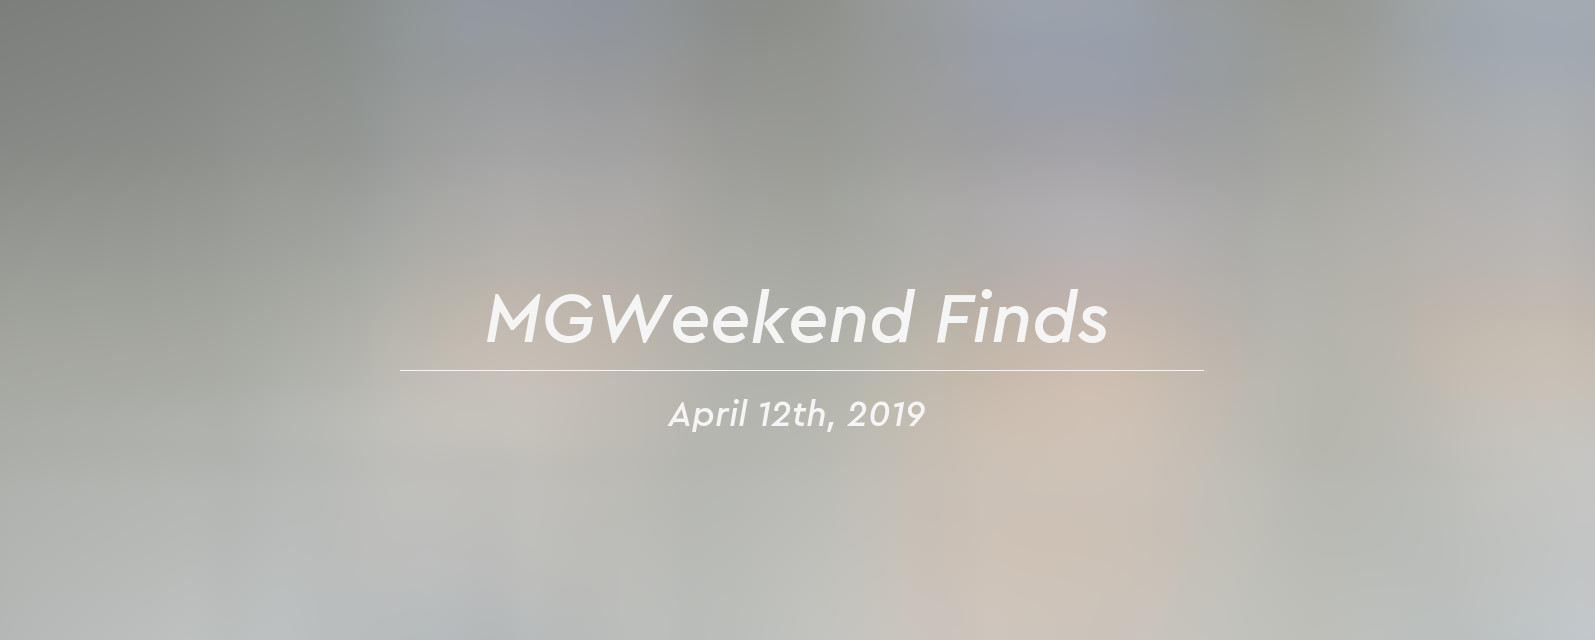 mgweekend finds 2019 04 12 header